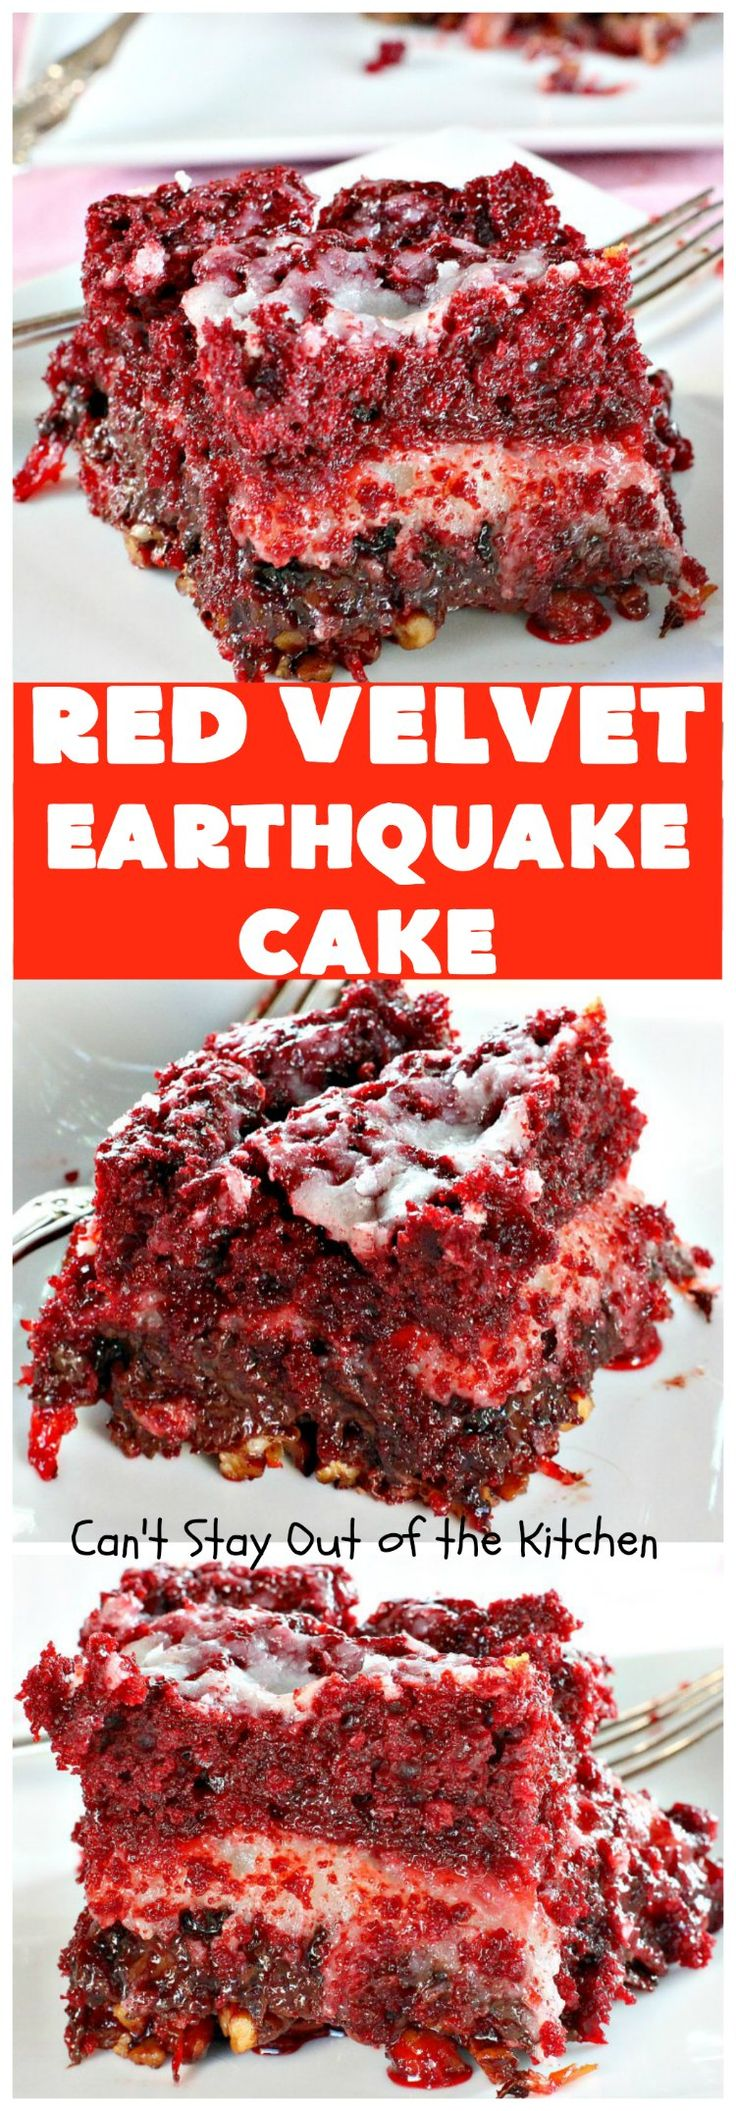 Red Velvet Earthquake Cake | Can't Stay Out of the Kitchen | This amazing #dessert experiences a volcanic shift while baking, so it craters and shifts layers like an earthquake. Our fabulous #redvelvet #cake is perfect for special occasions & #holidays like #Christmas & #ValentinesDay. #chocolate #cheesecake